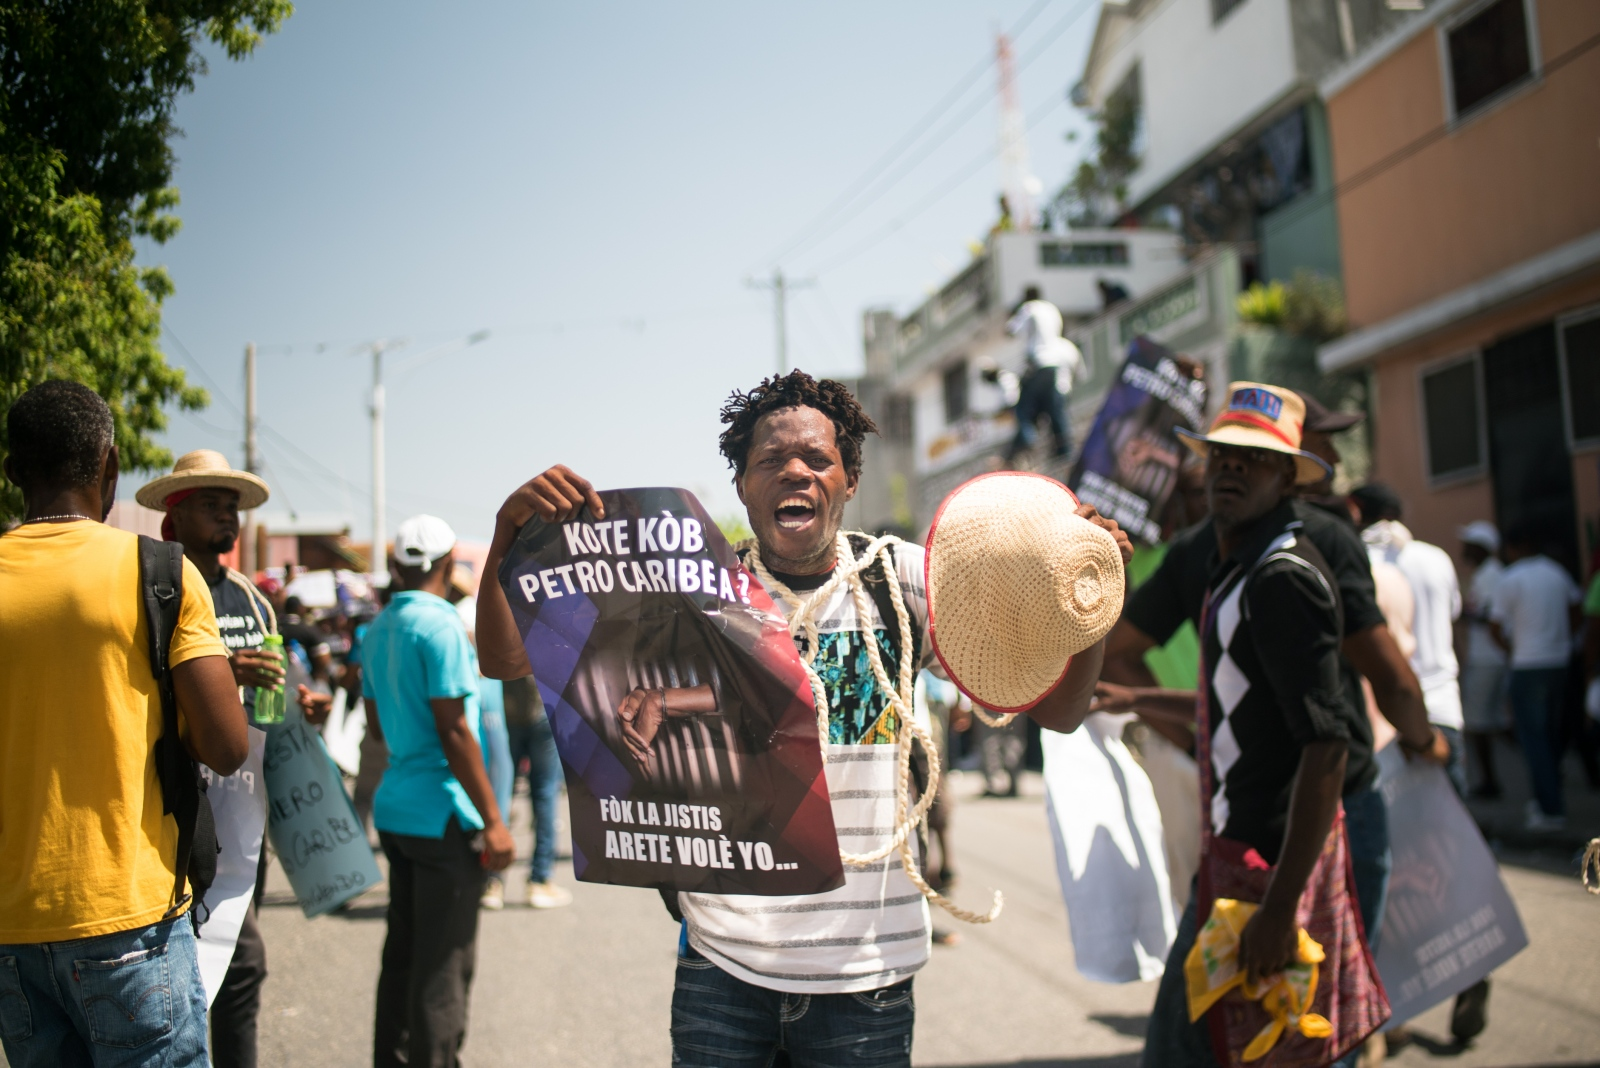 """Photography image - A protestor holds a banner and rope demanding for accountability and an end to corruption during the protest. Protesters gathered to demonstrate against the $3.8 billion that the government and private sector has been accused of embezzling from Venezuela's subsidized PetroCaribe oil program. The revenue was supposed to go toward financing economic and social programs. The PetroCaribe Challenge was started after Haitian filmmaker Gilbert Mirambeau Jr. posted on social media asking: """"Kot Kòb PetroCaribe a,"""" or """"Where did the PetroCaribe money go?"""" With a large youth, grassroots base, ongoing demonstrations across Haiti asking for accountability and denouncing corruption. Haiti, 2018."""